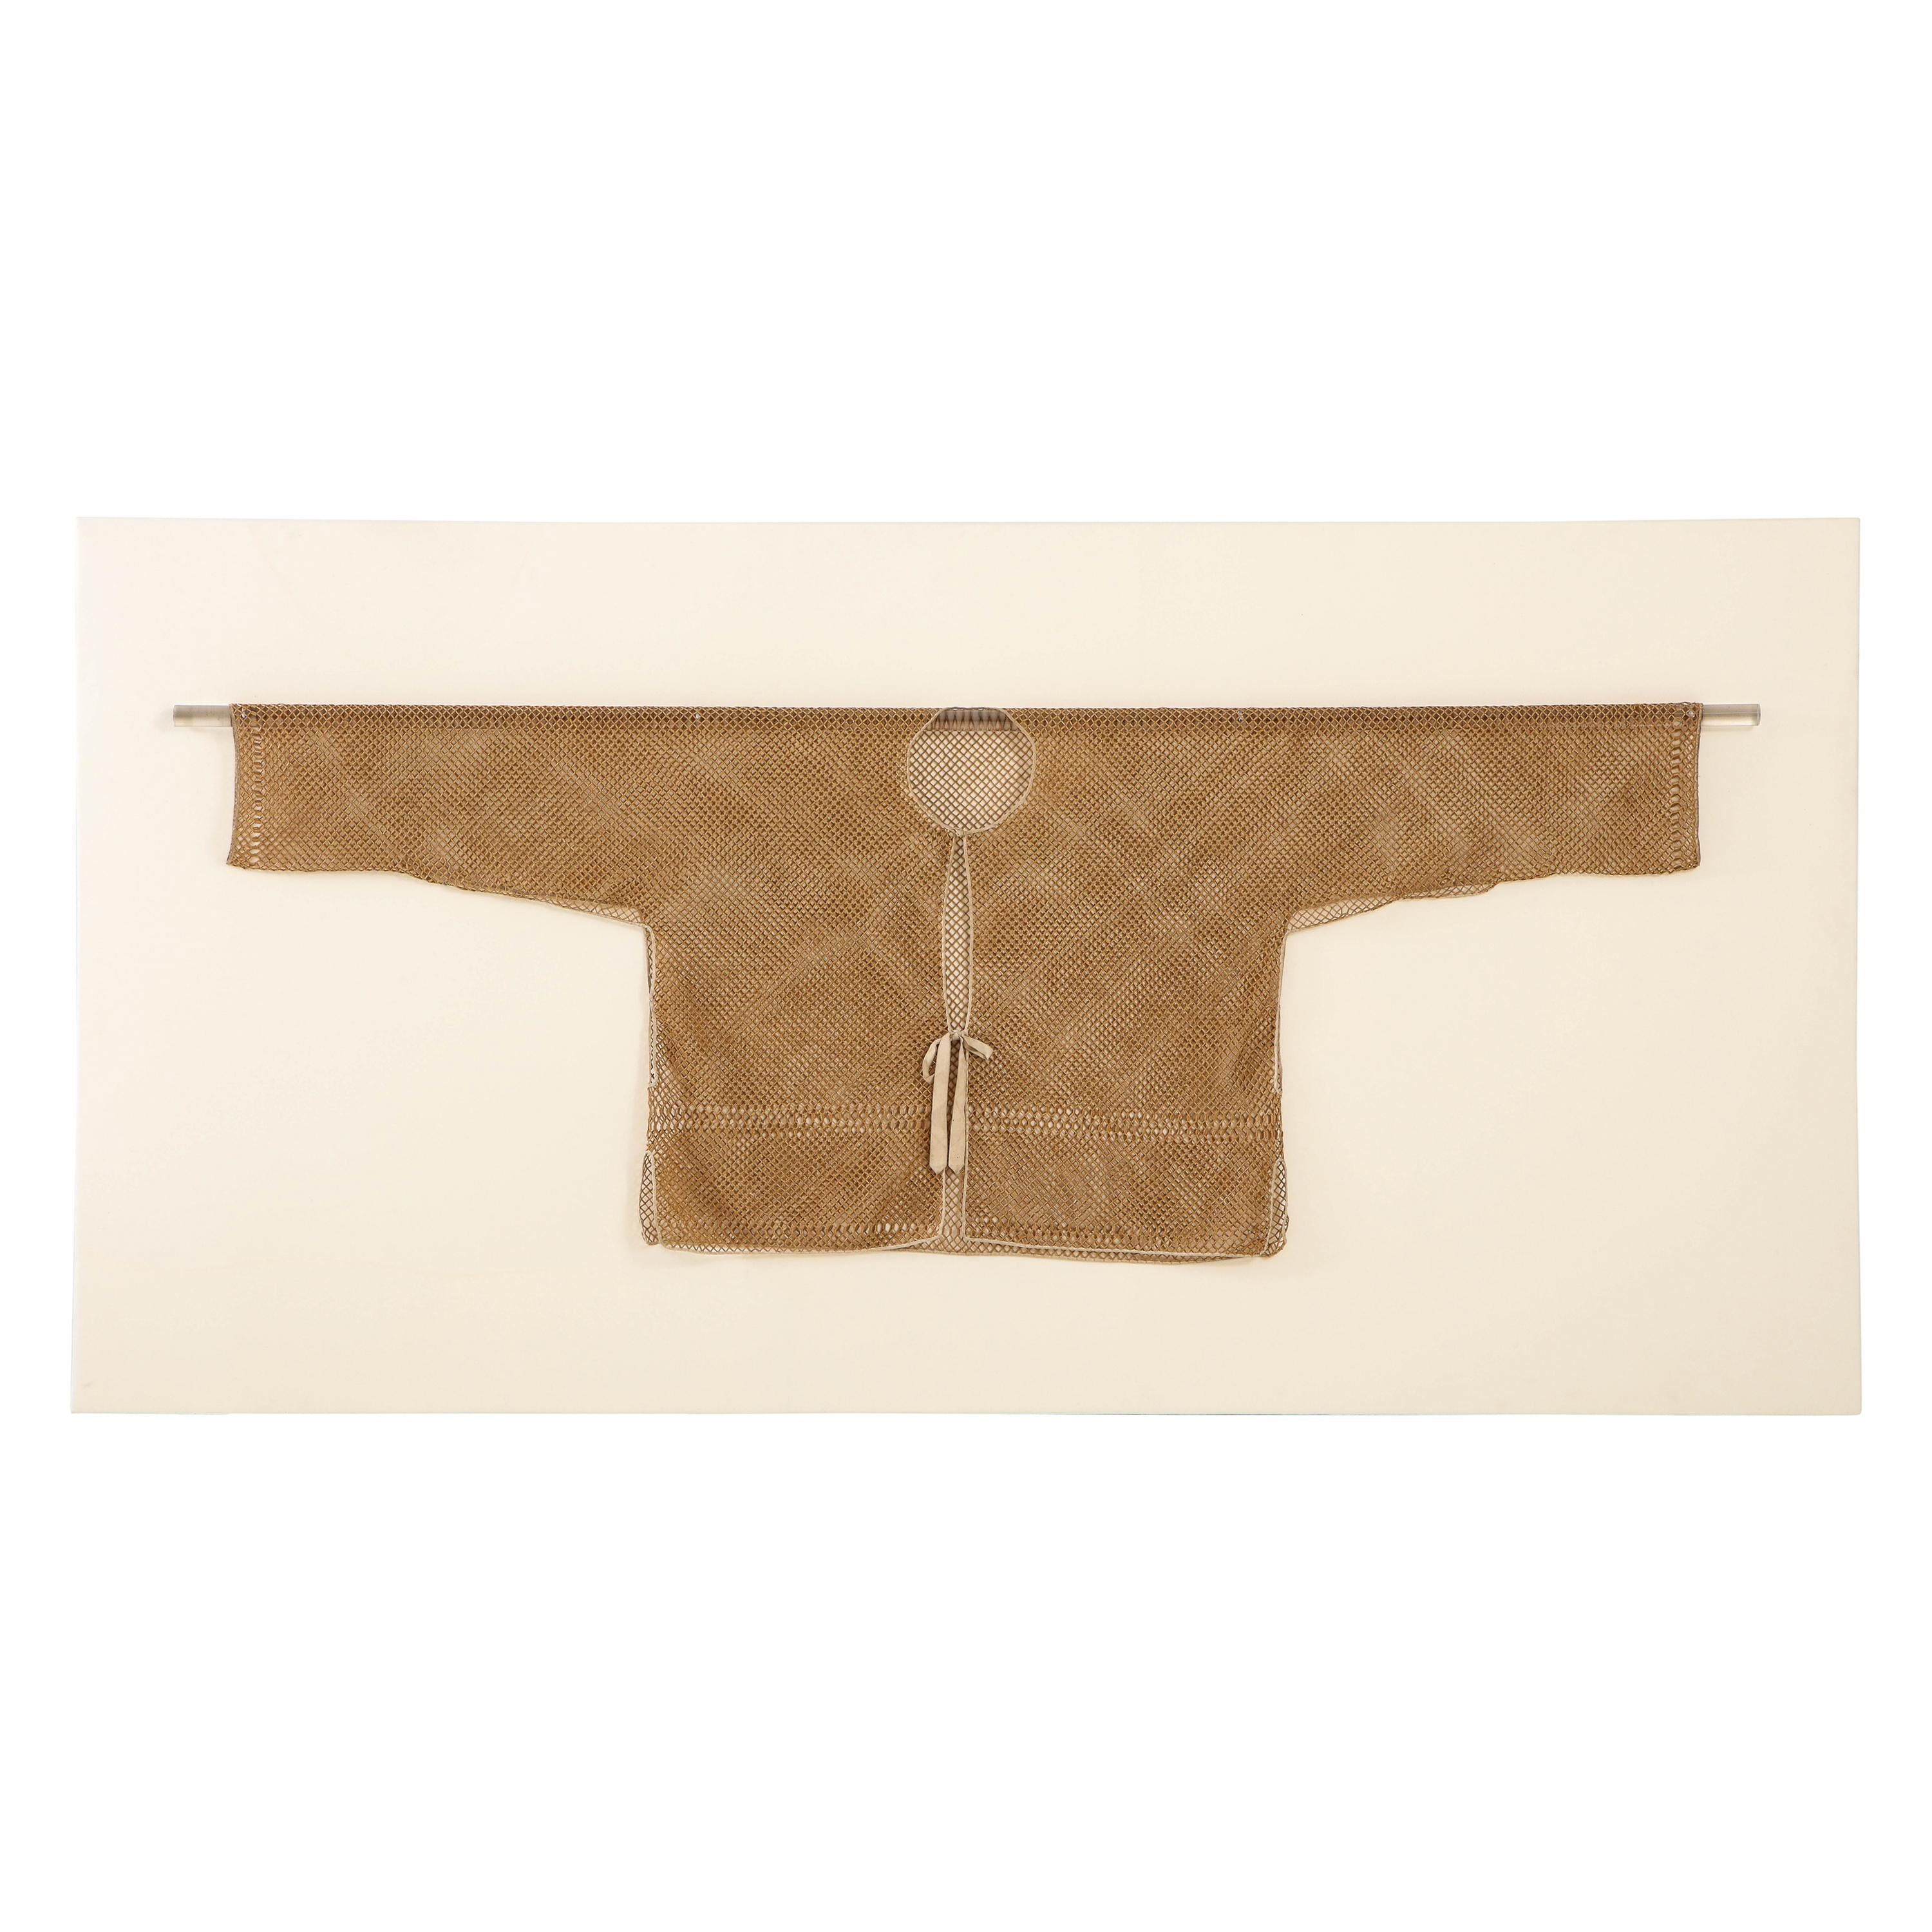 19th Century Qing Dynasty Chinese Bamboo Jacket in Frame